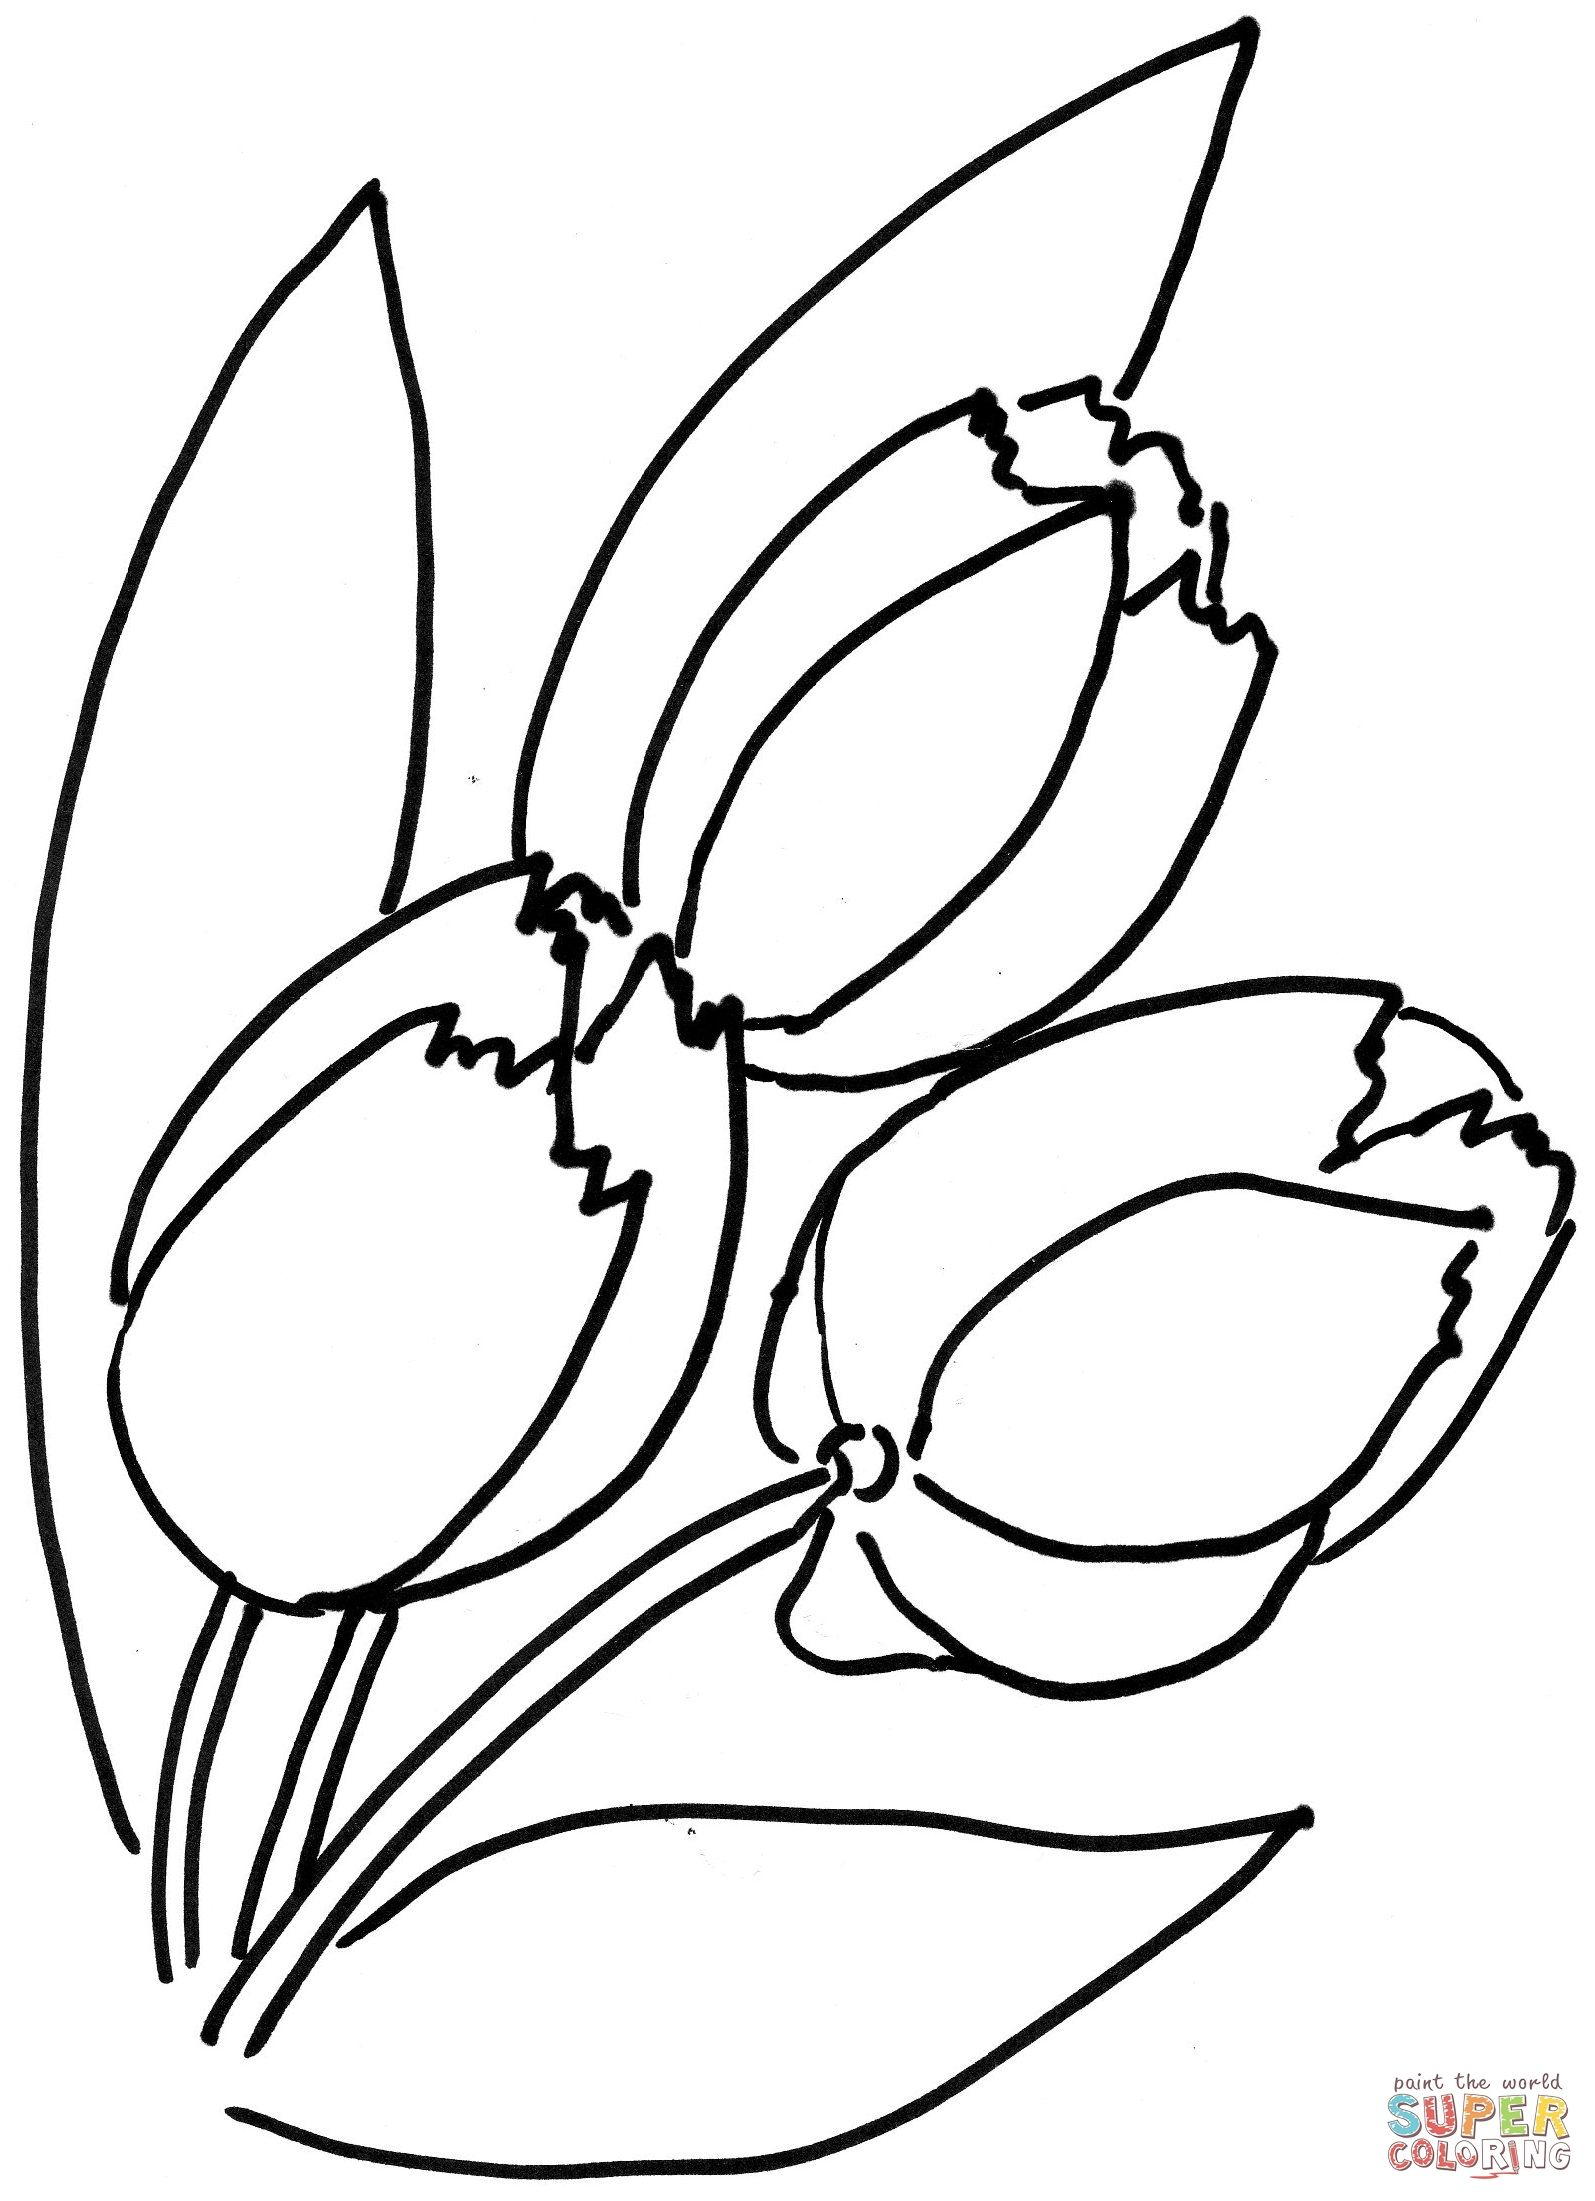 Tulips Flower   Super Coloring   Flower coloring pages ...